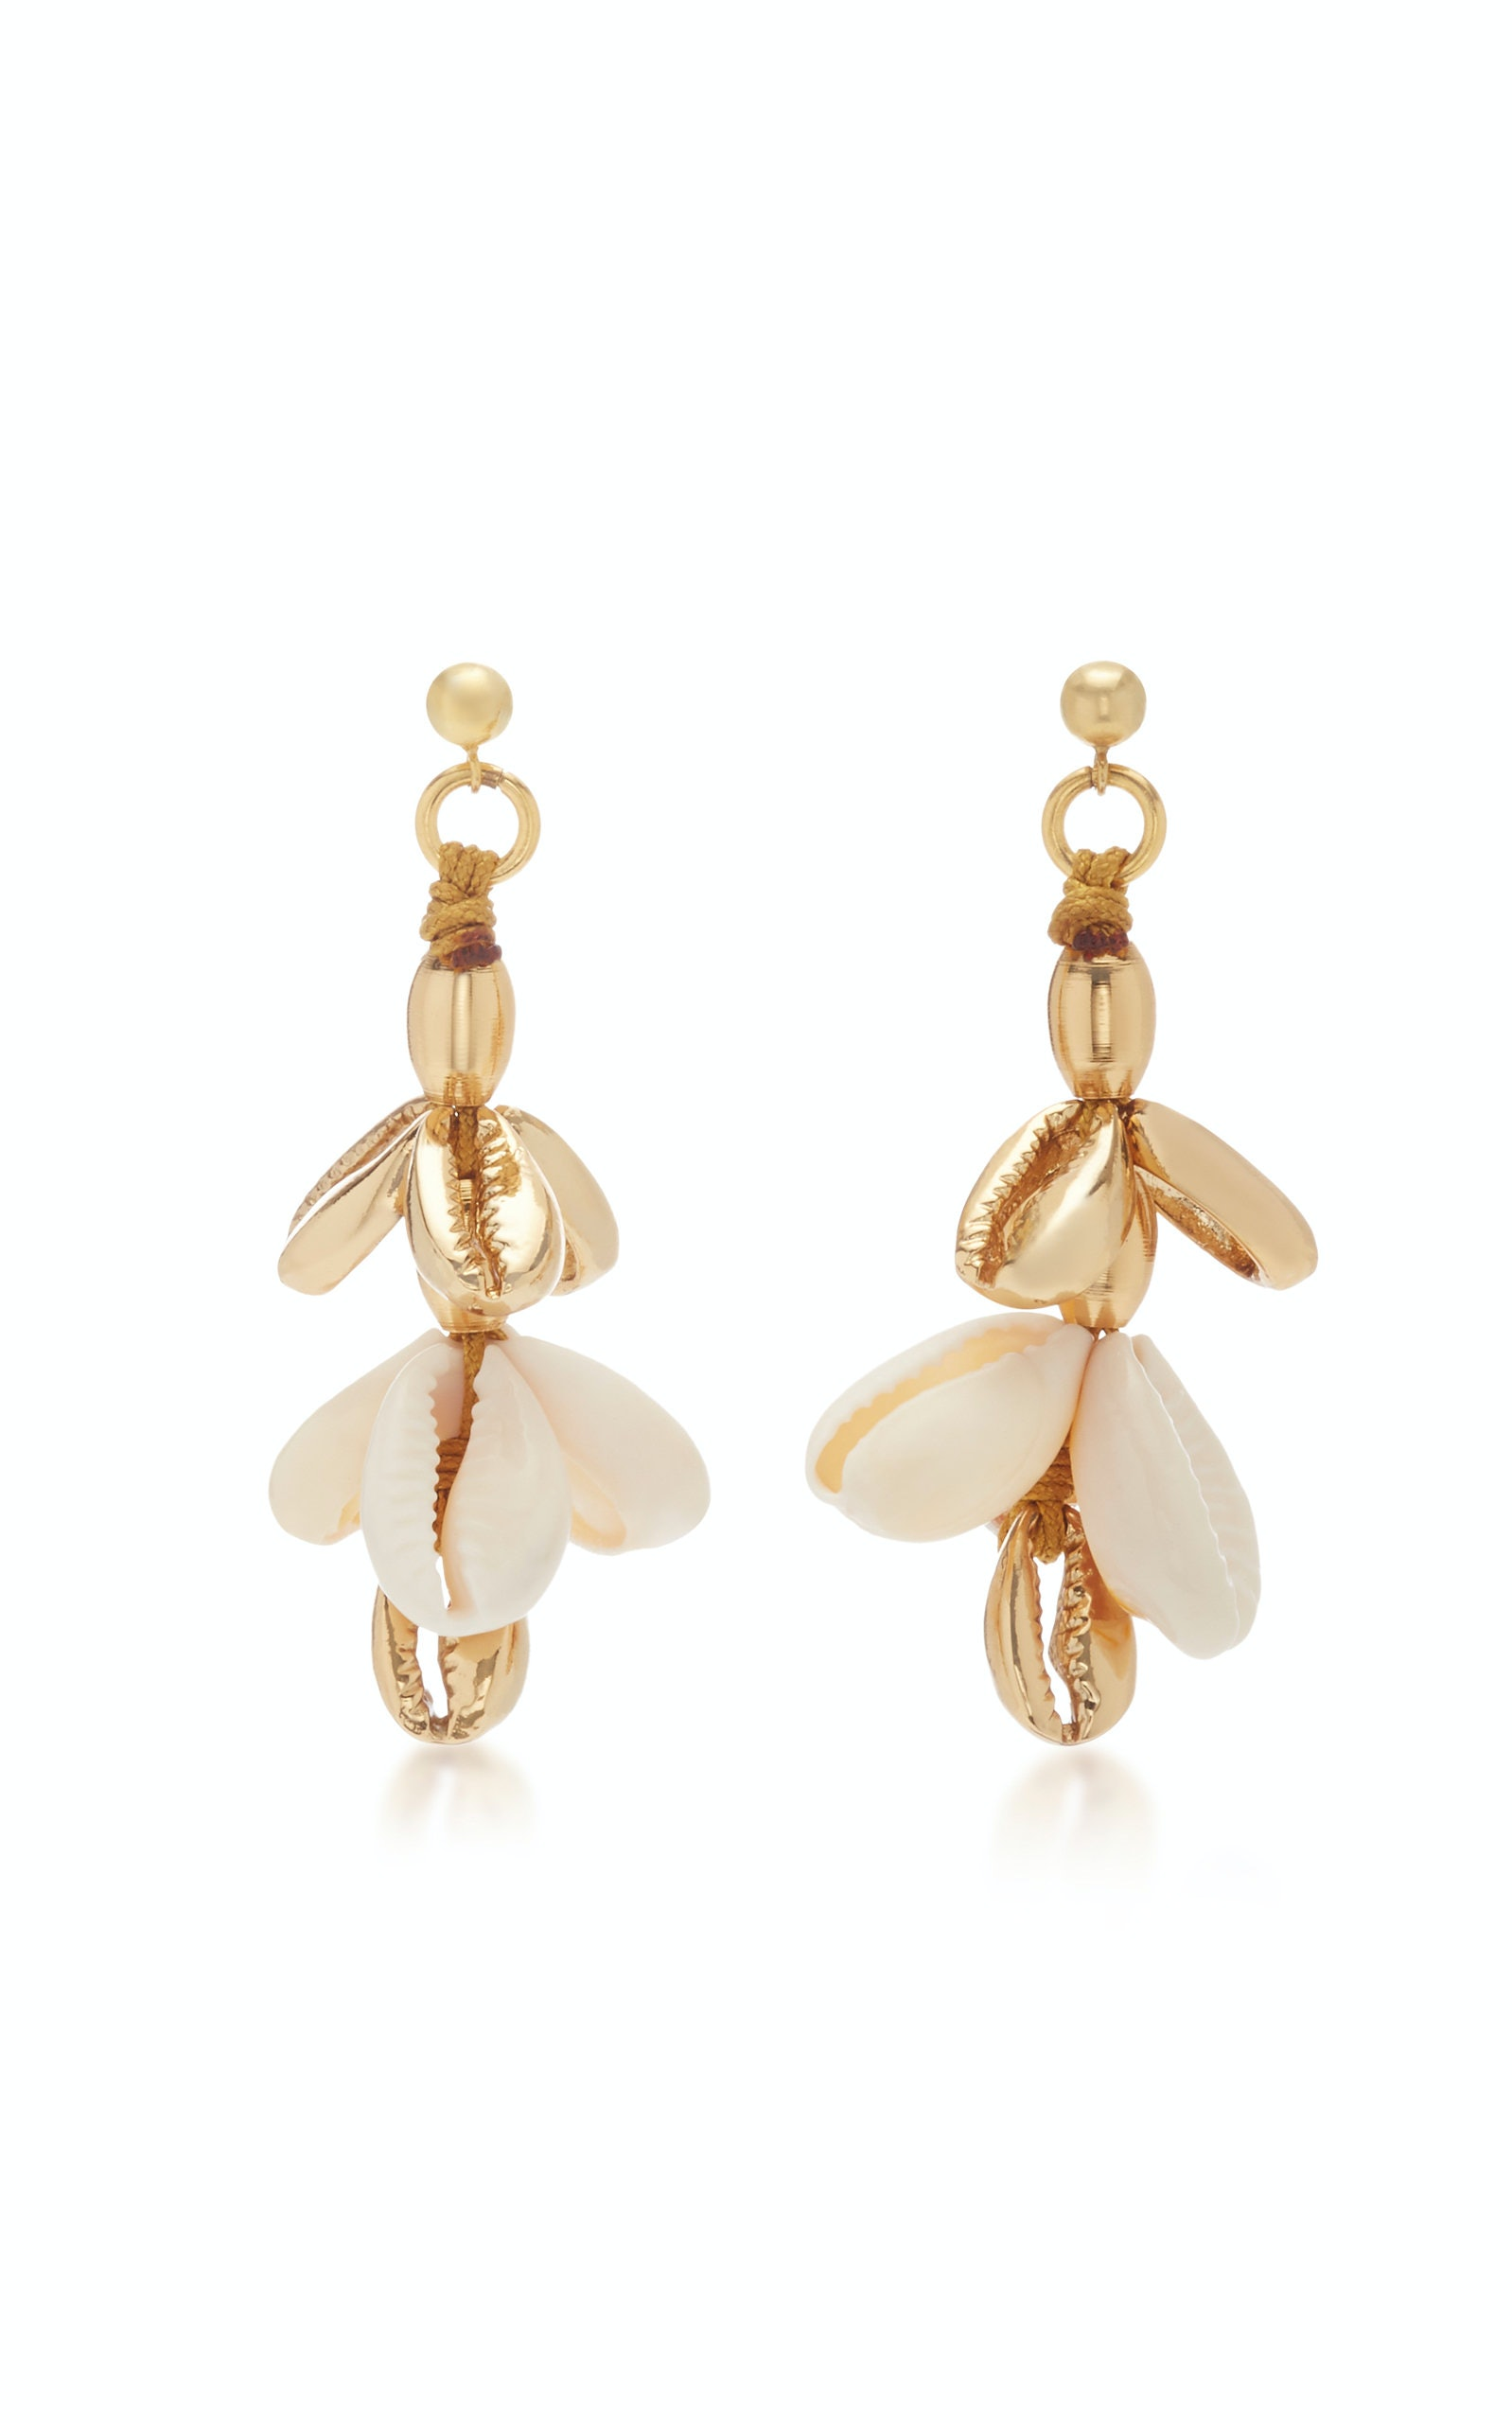 188ddf950 The Seashell Jewelry Trend Will Stay For 2019 According To 4 Fashion  Insiders